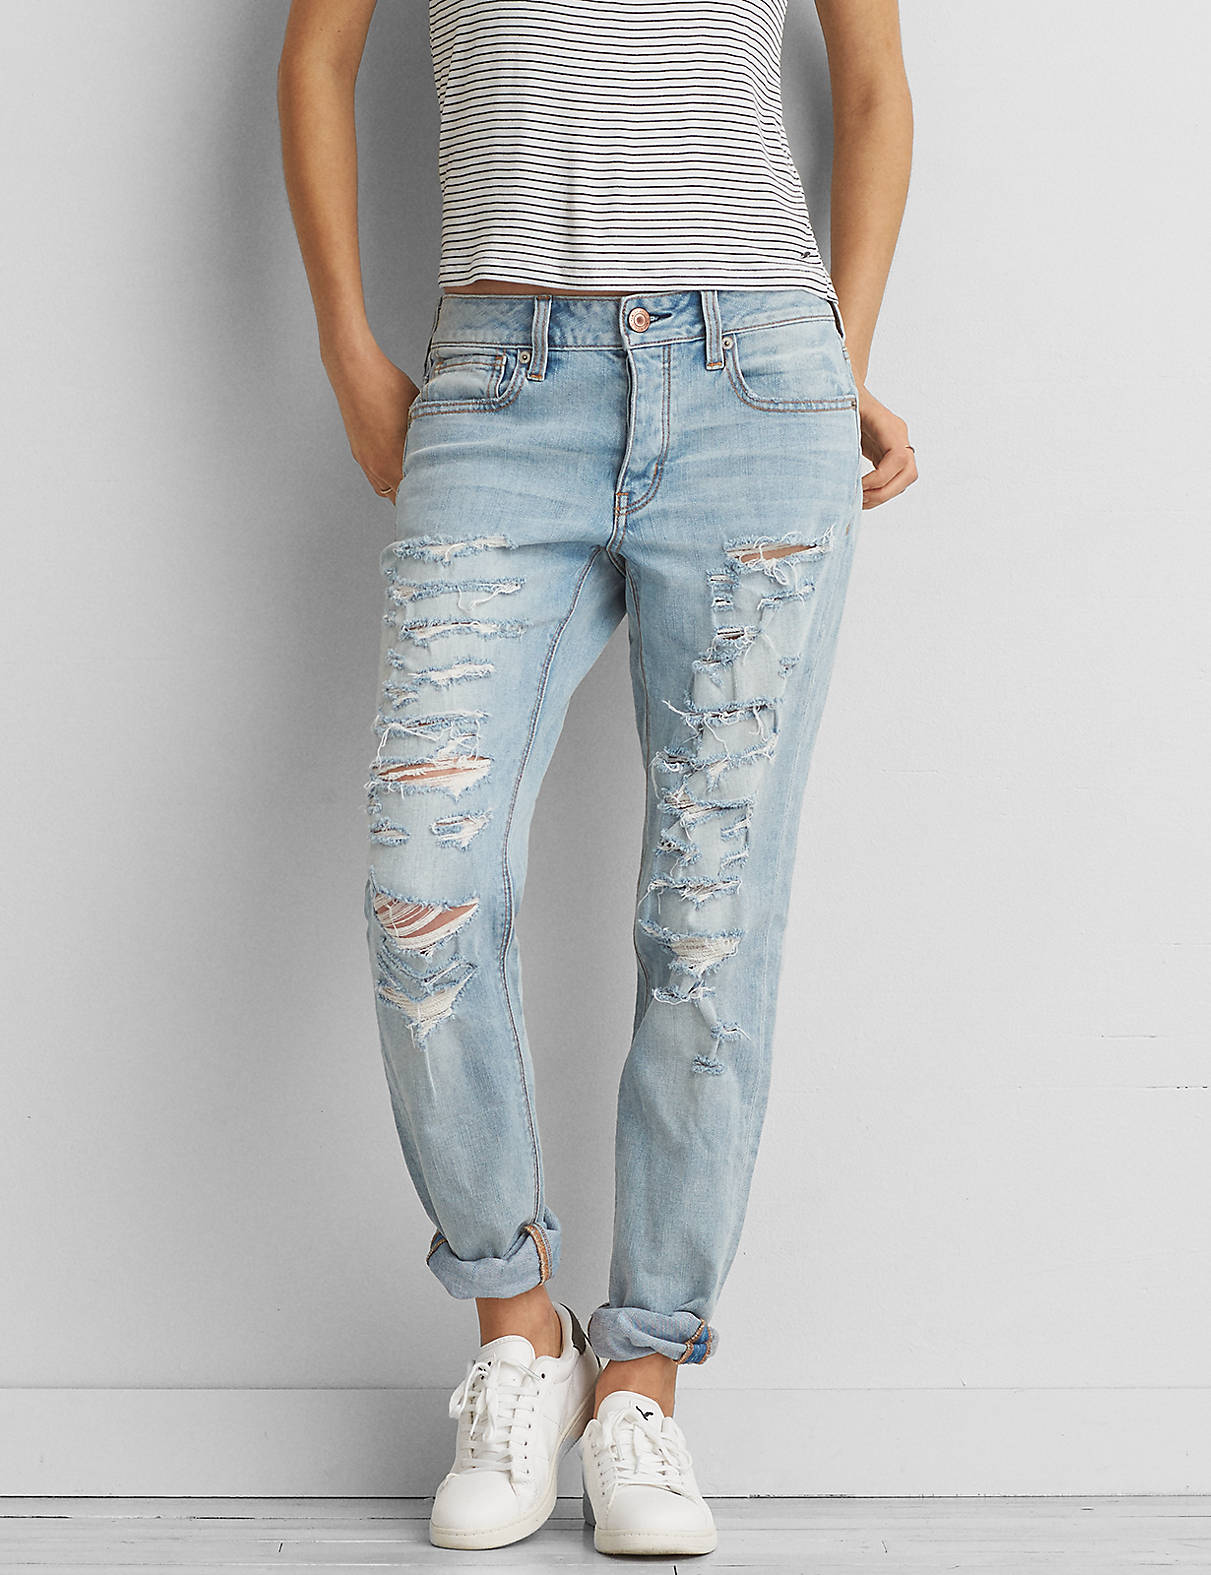 Tomgirl Jean, Faded Super Rip Torn | American Eagle Outfitters